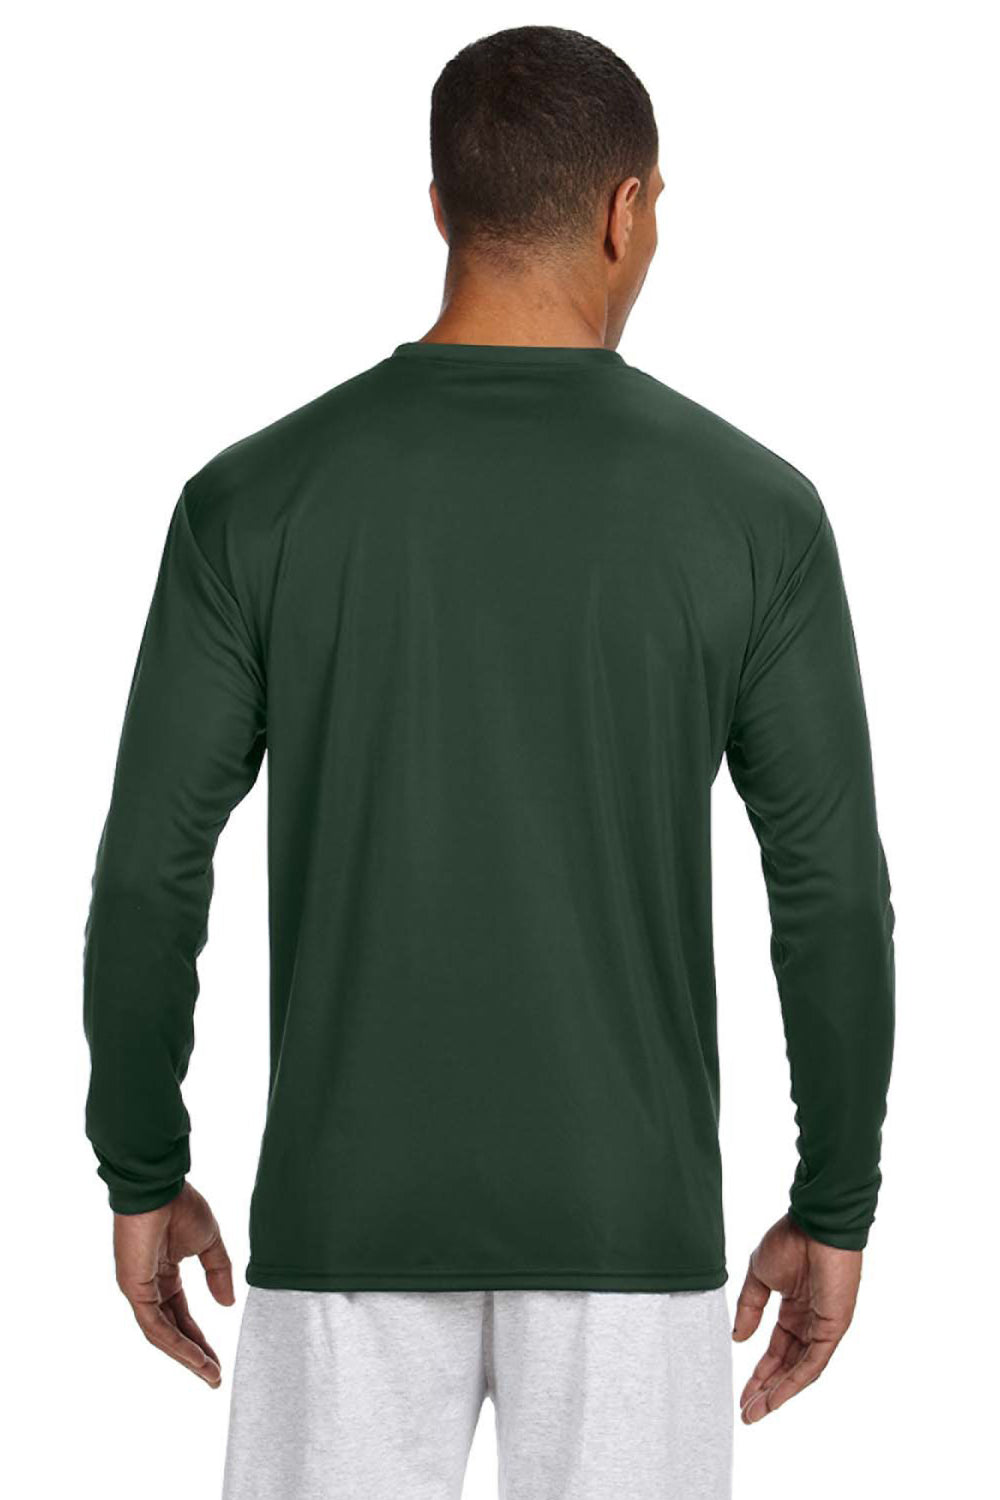 A4 N3165 Mens Cooling Performance Moisture Wicking Long Sleeve Crewneck T-Shirt Forest Green Back